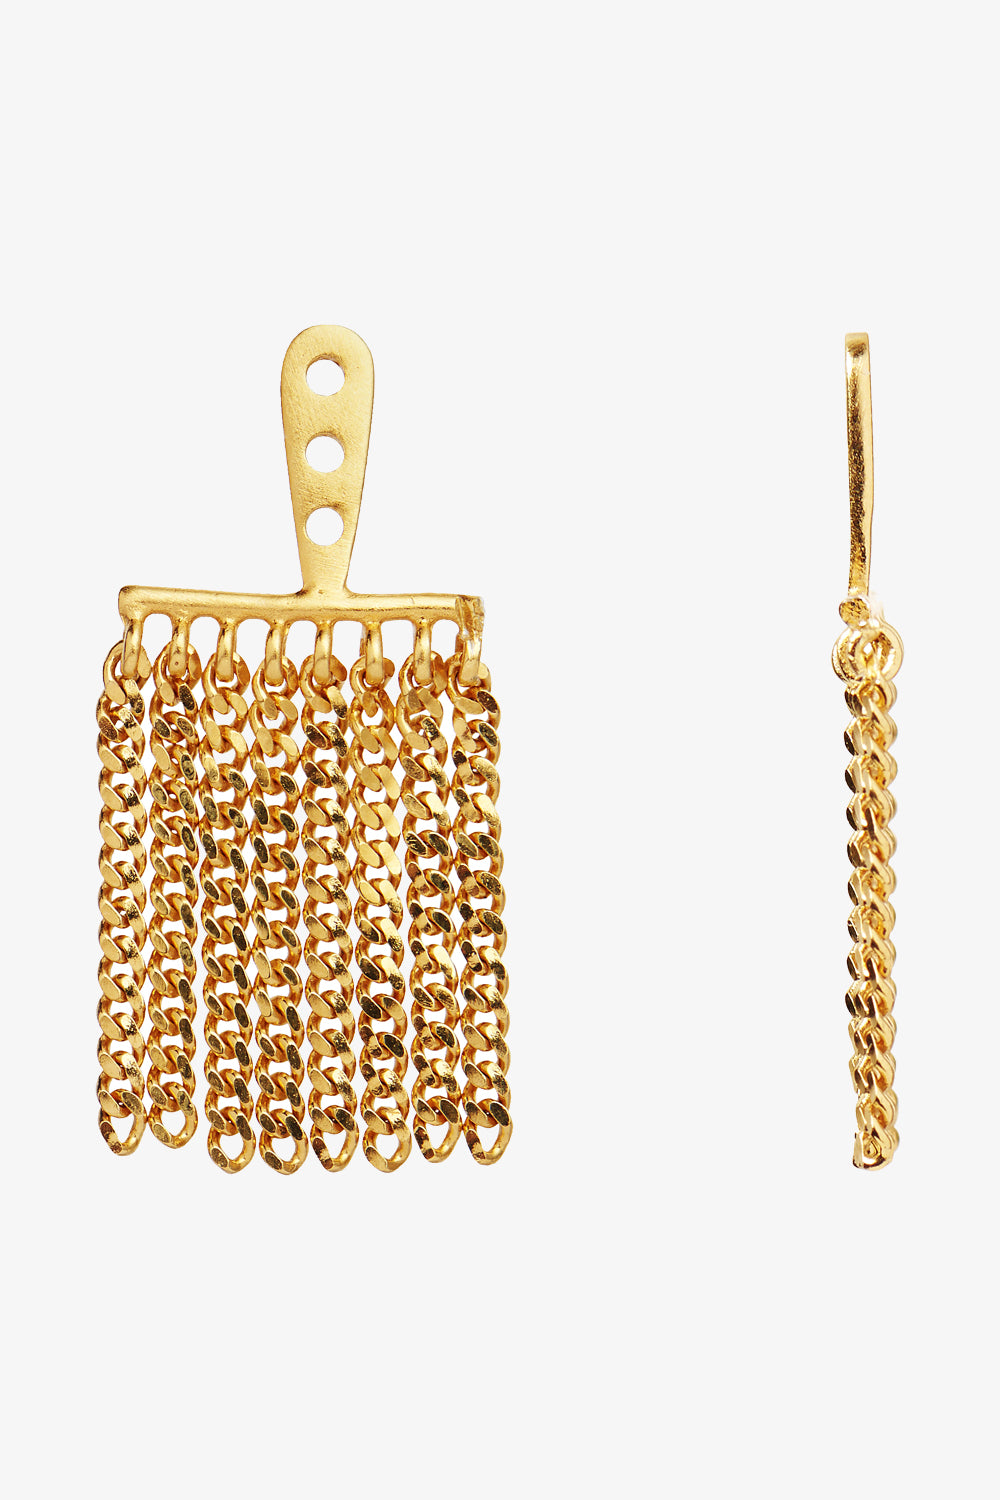 Billede af Dancing Chains Behind Ear-Earring - Gold - Stine A - Guld One Size